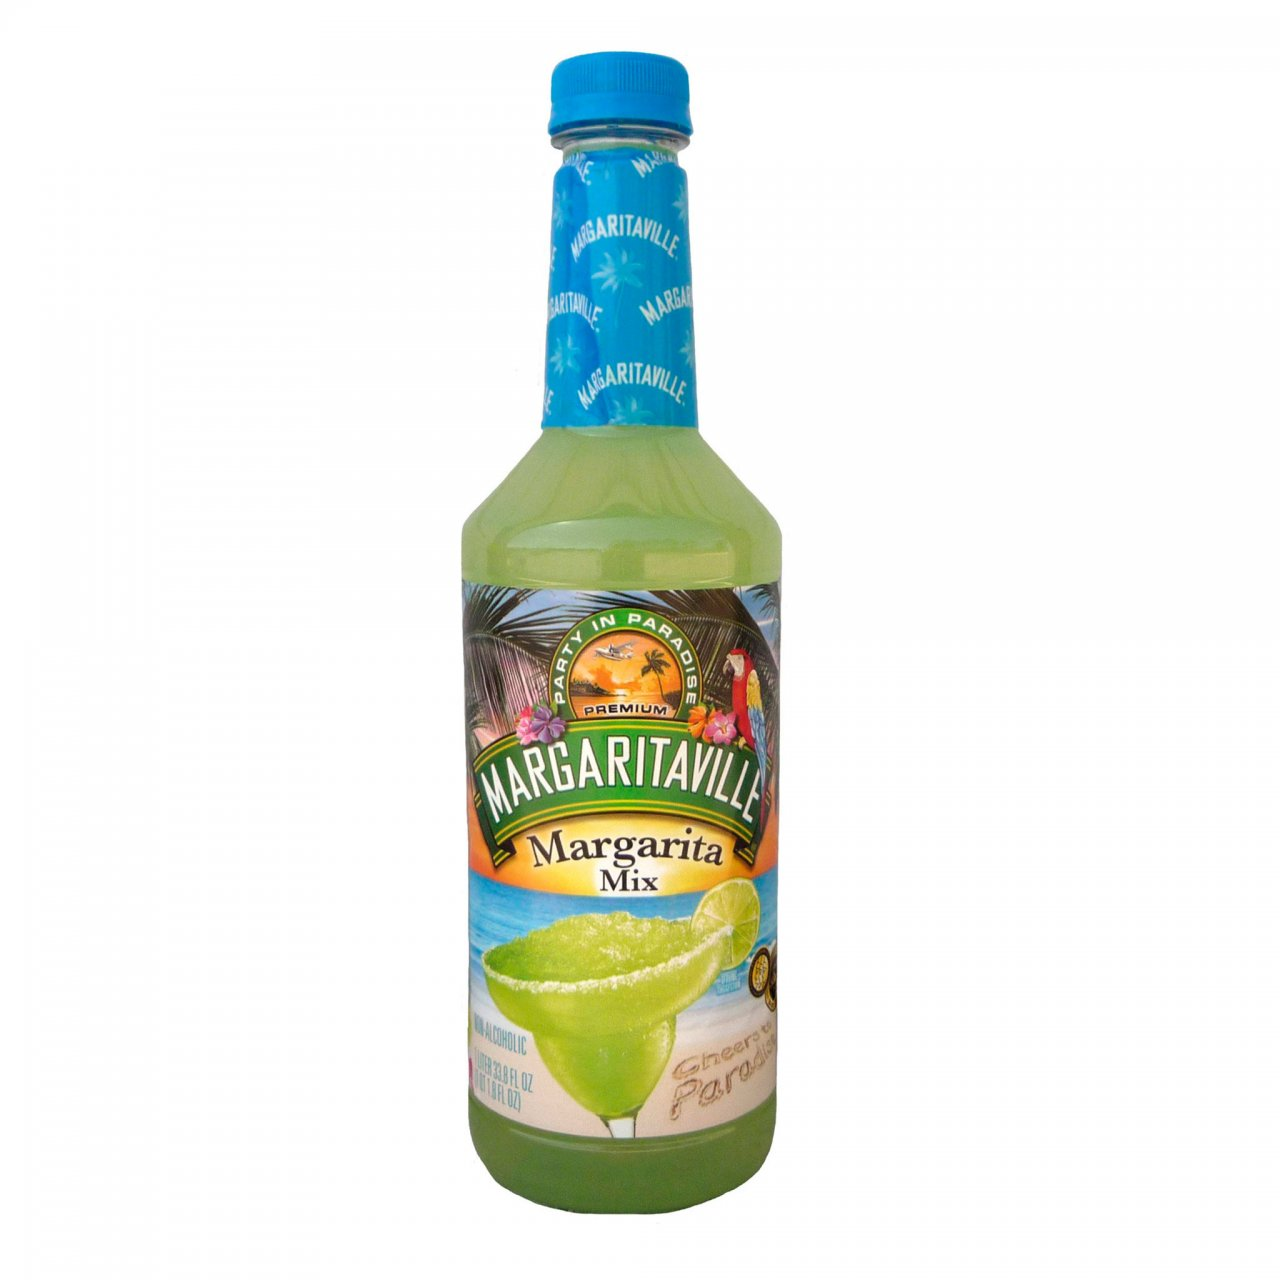 MARGARITAVILLE MARGARITA MIX - Margaritaville Apparel Store